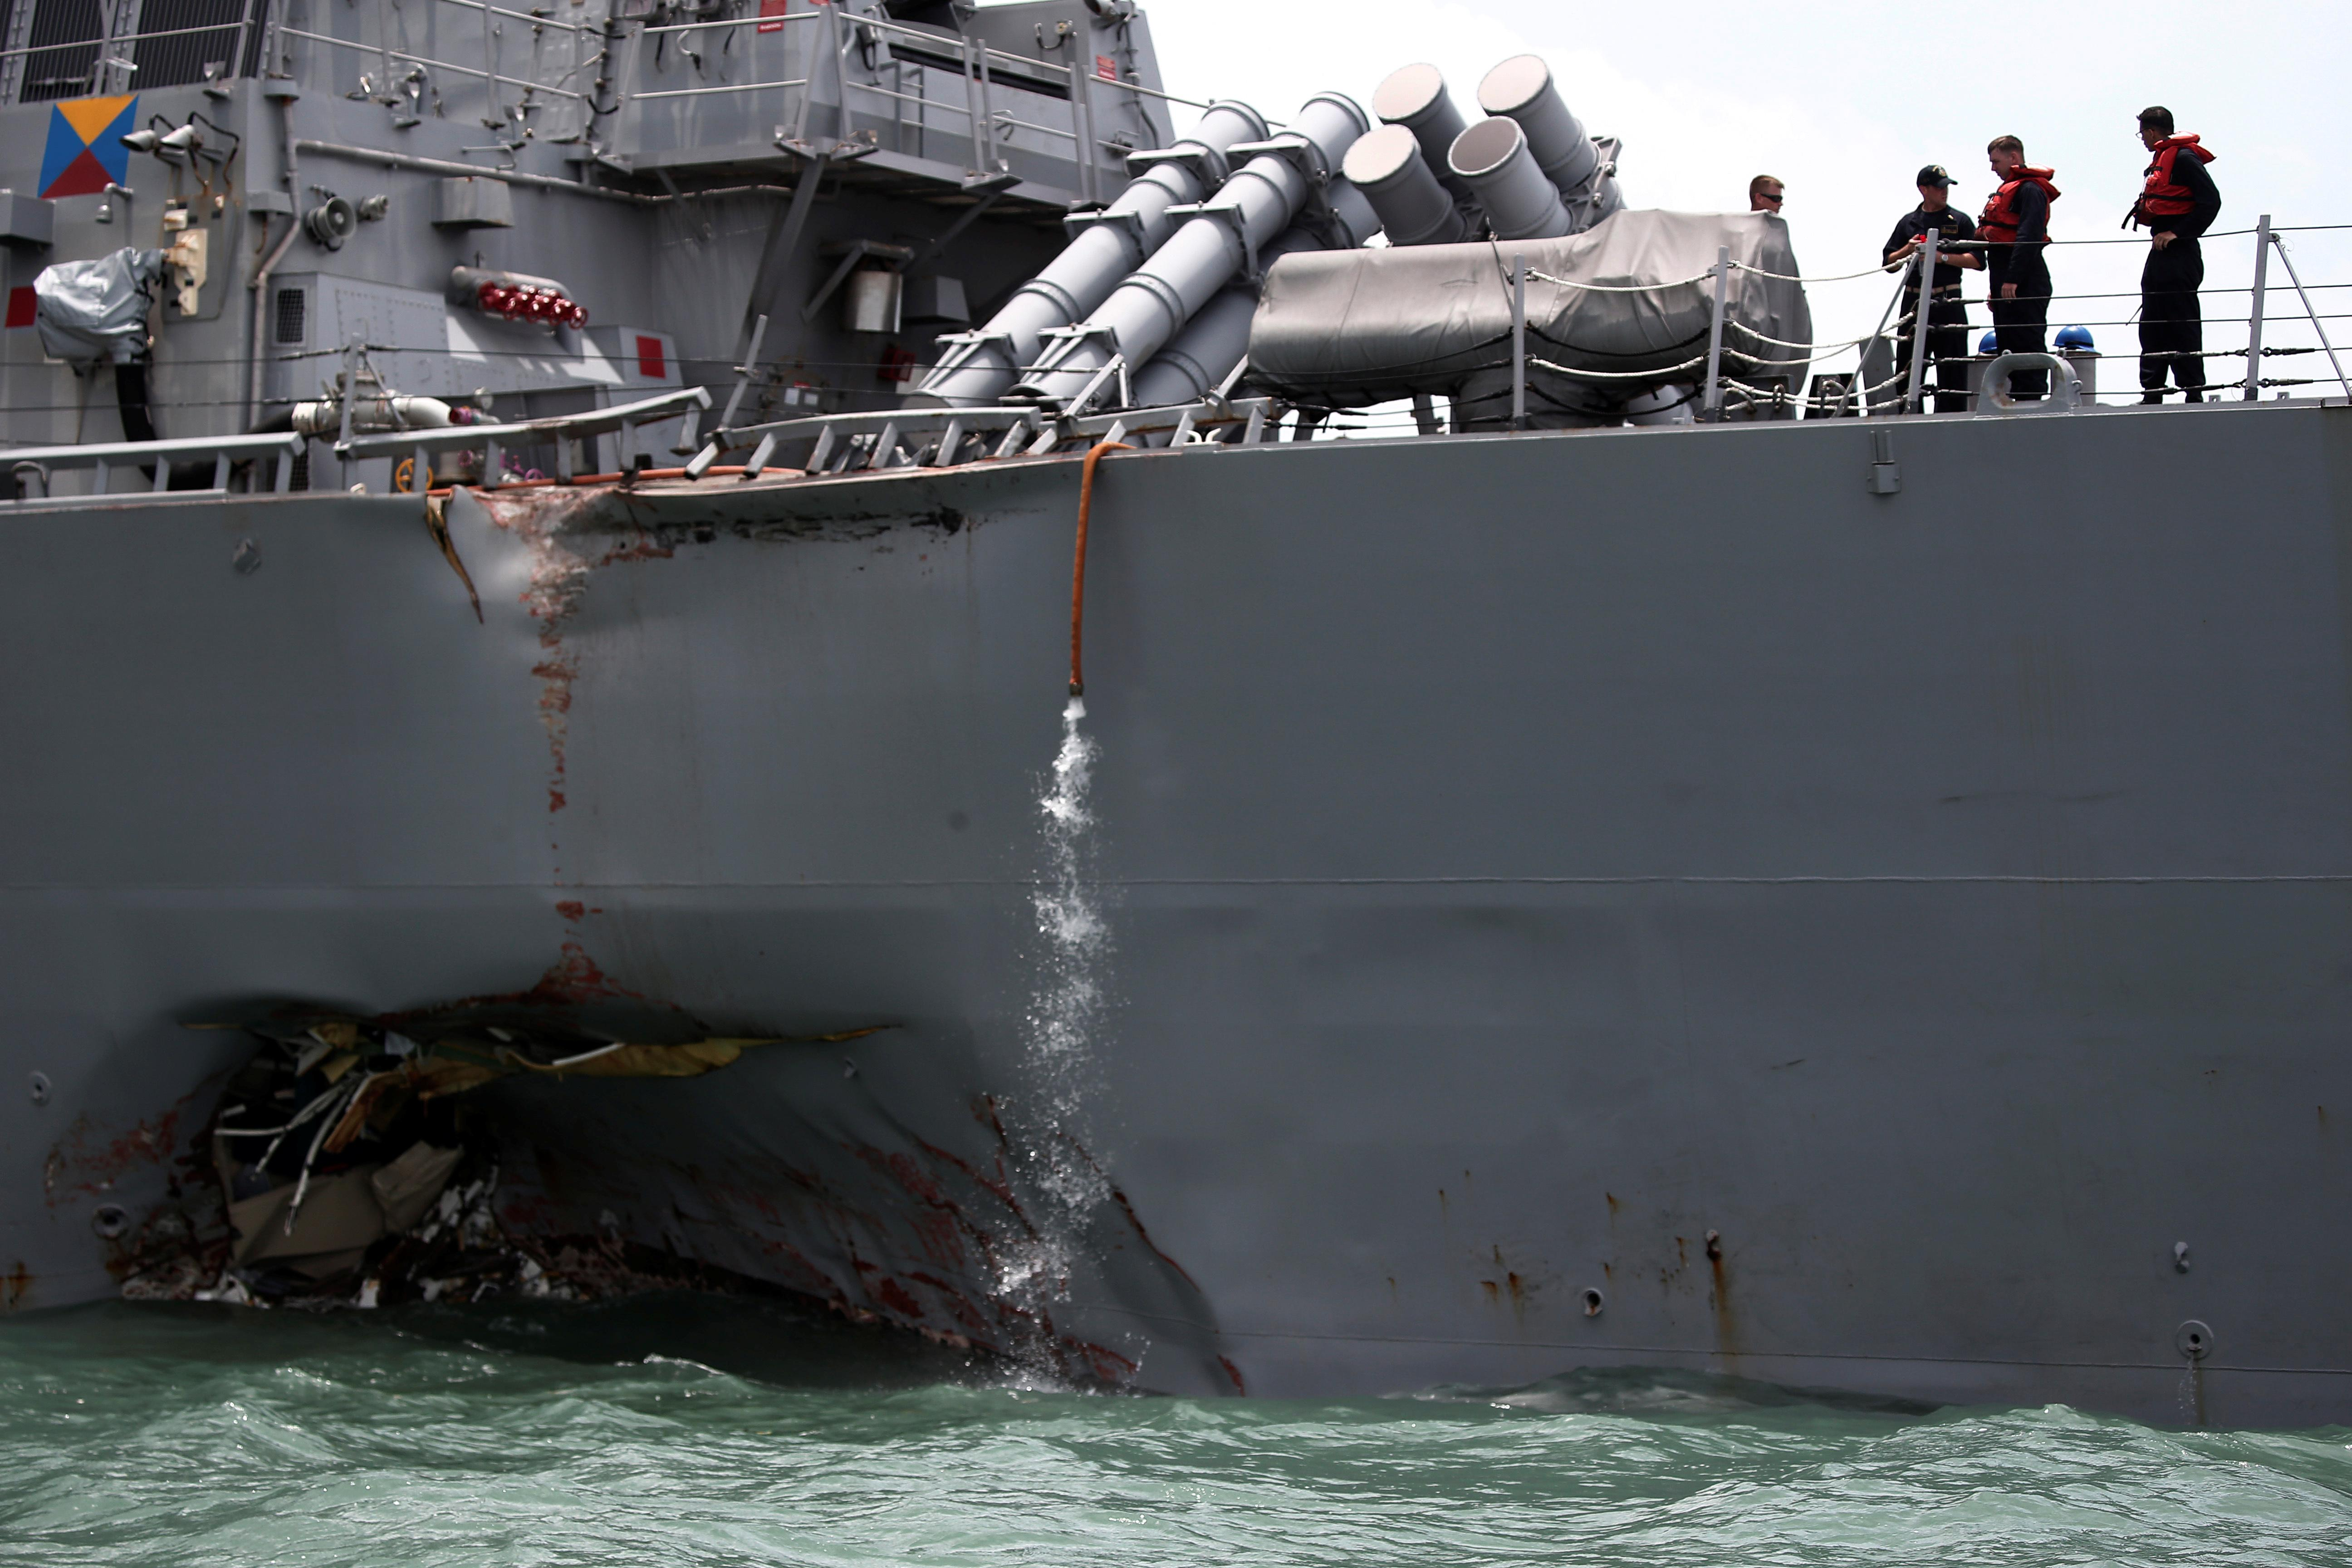 U.S. Navy to transport damaged destroyer from Singapore to Japan